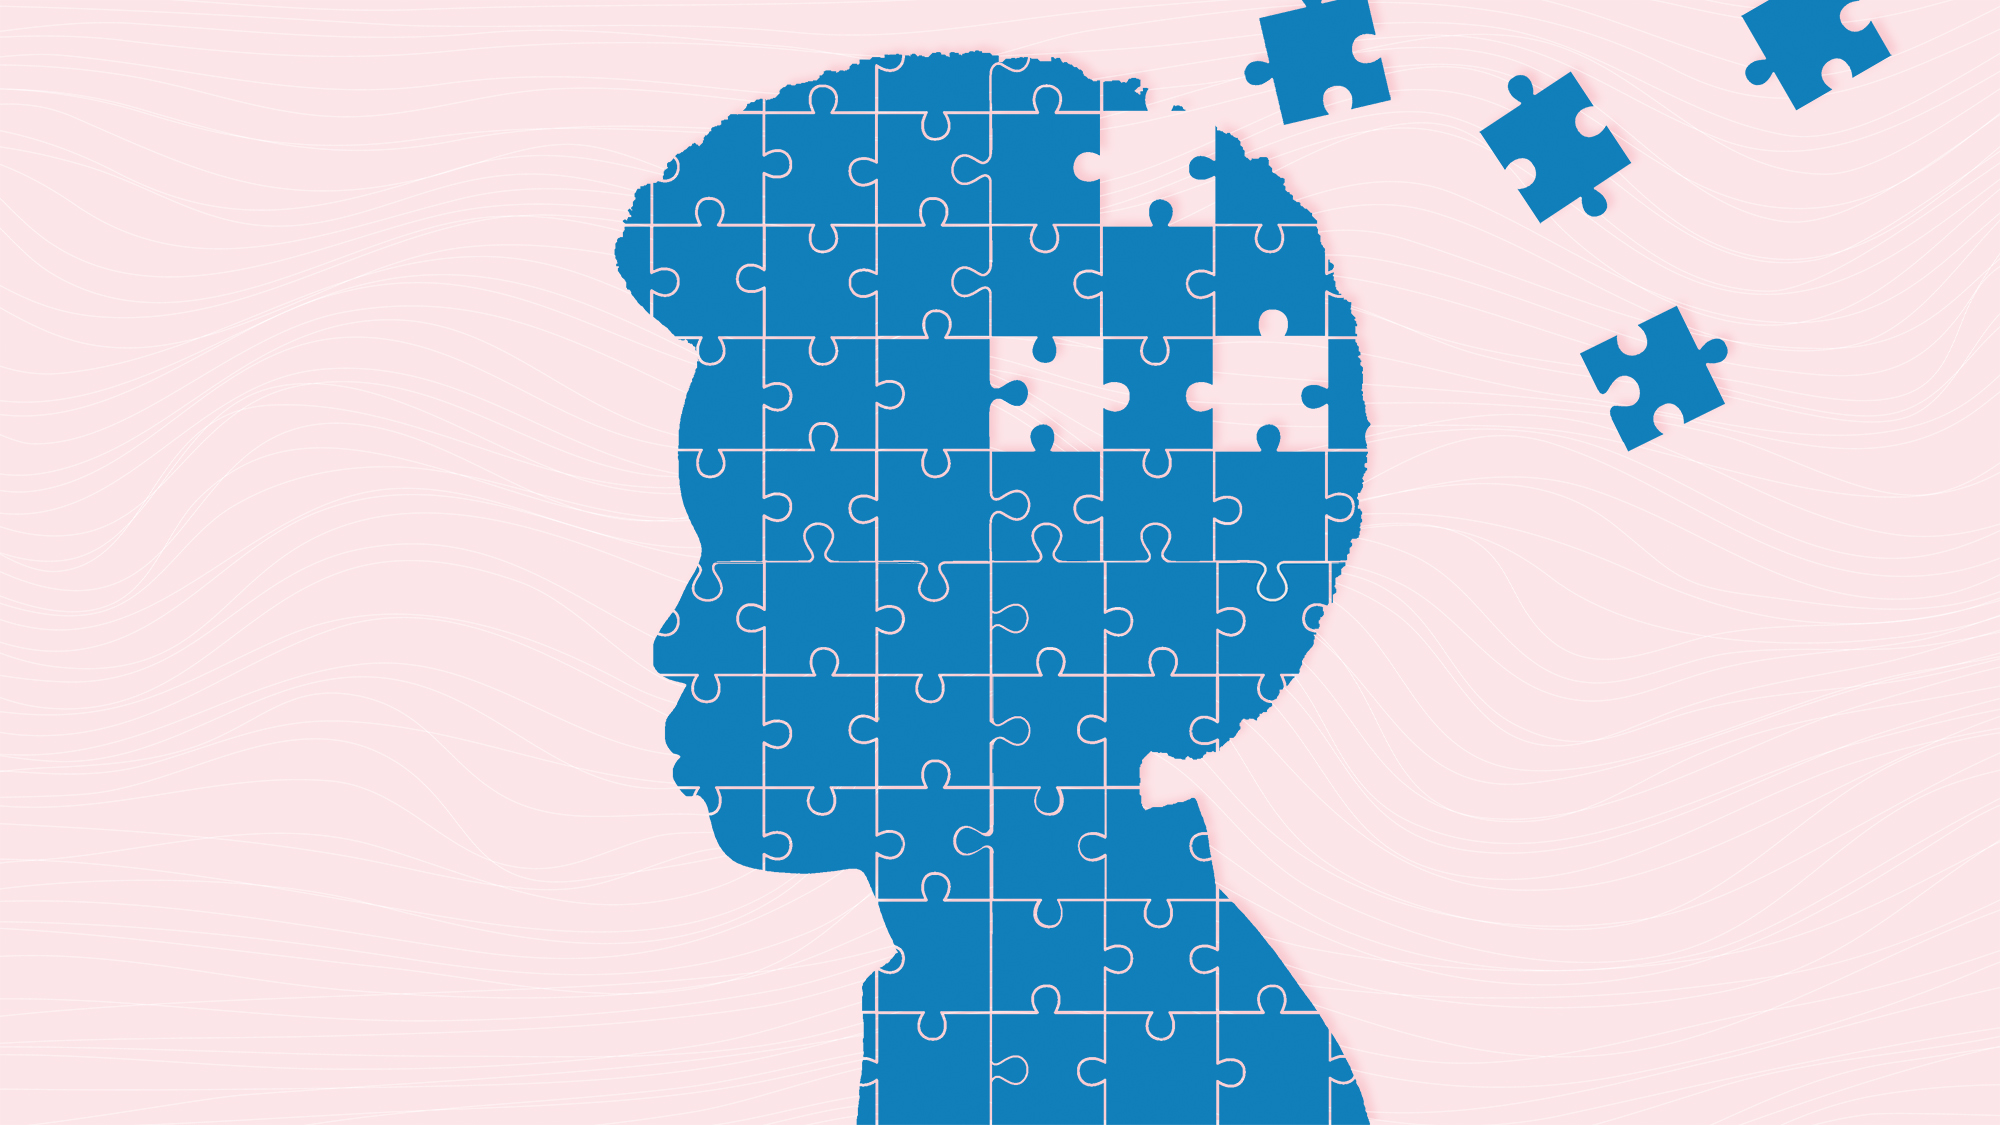 A puzzle of a silhouette of a woman with puzzle pieces floating away on a designed background